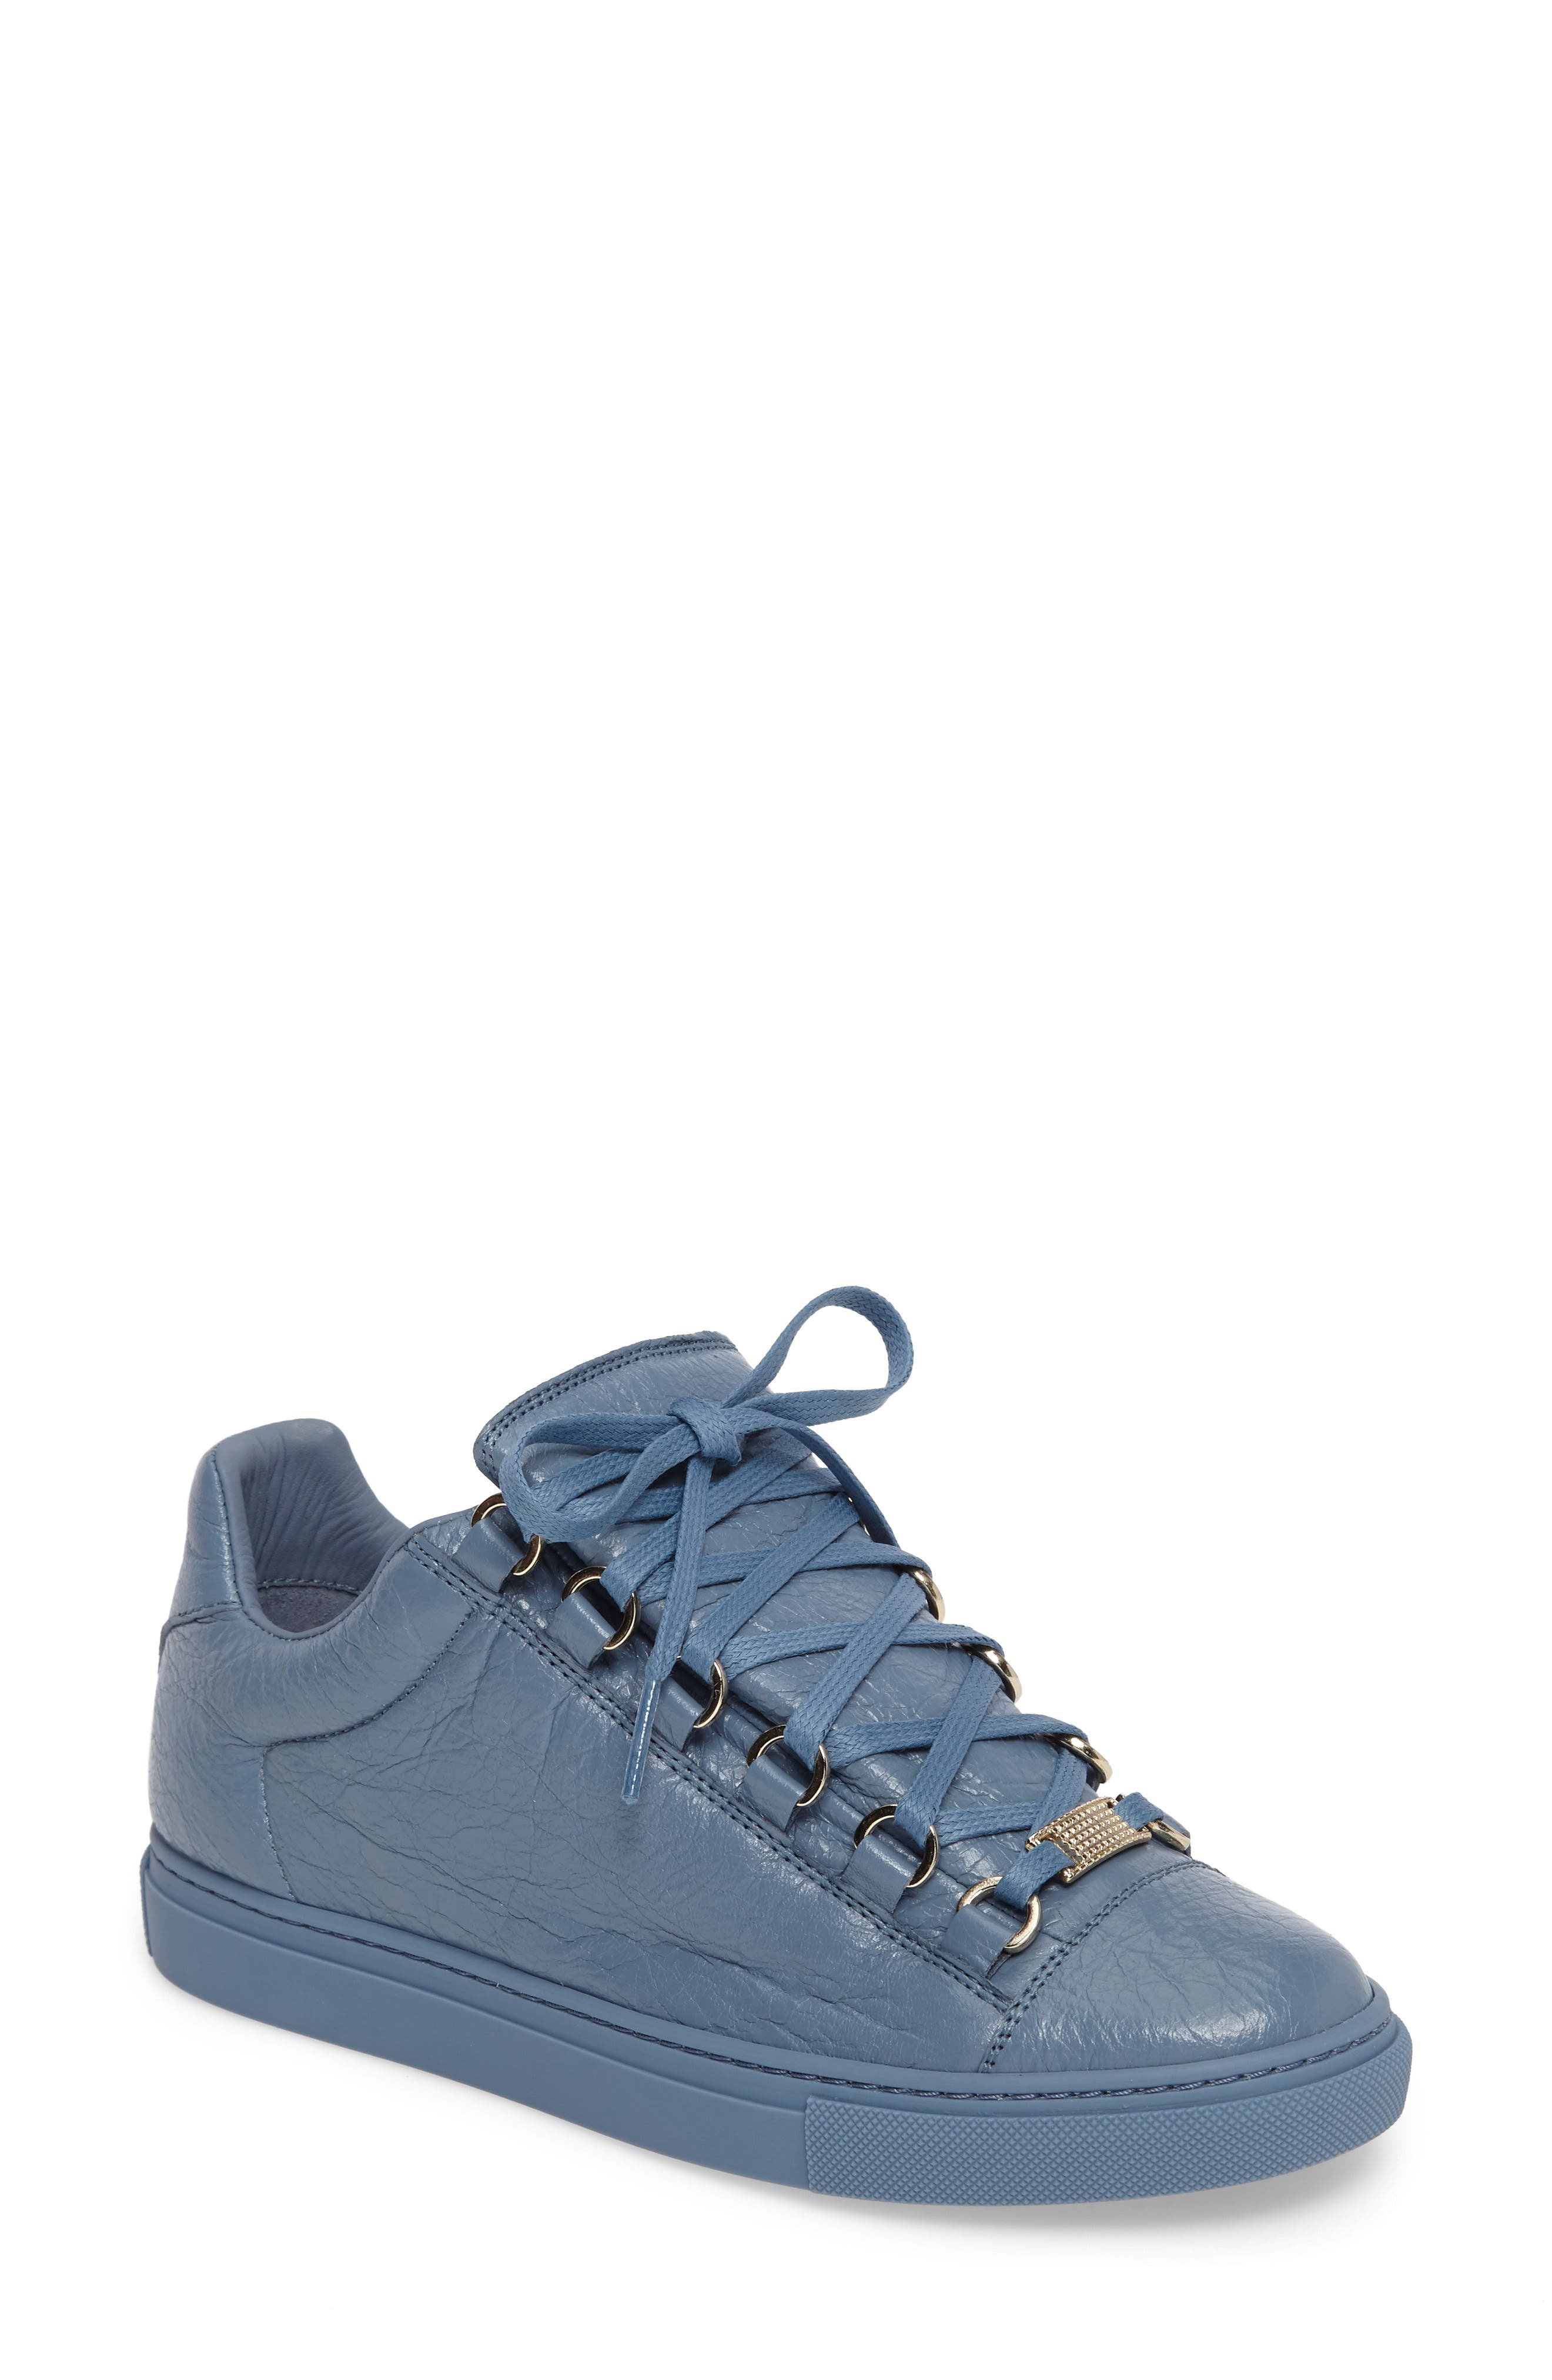 Balenciaga Low Top Sneaker (Women)